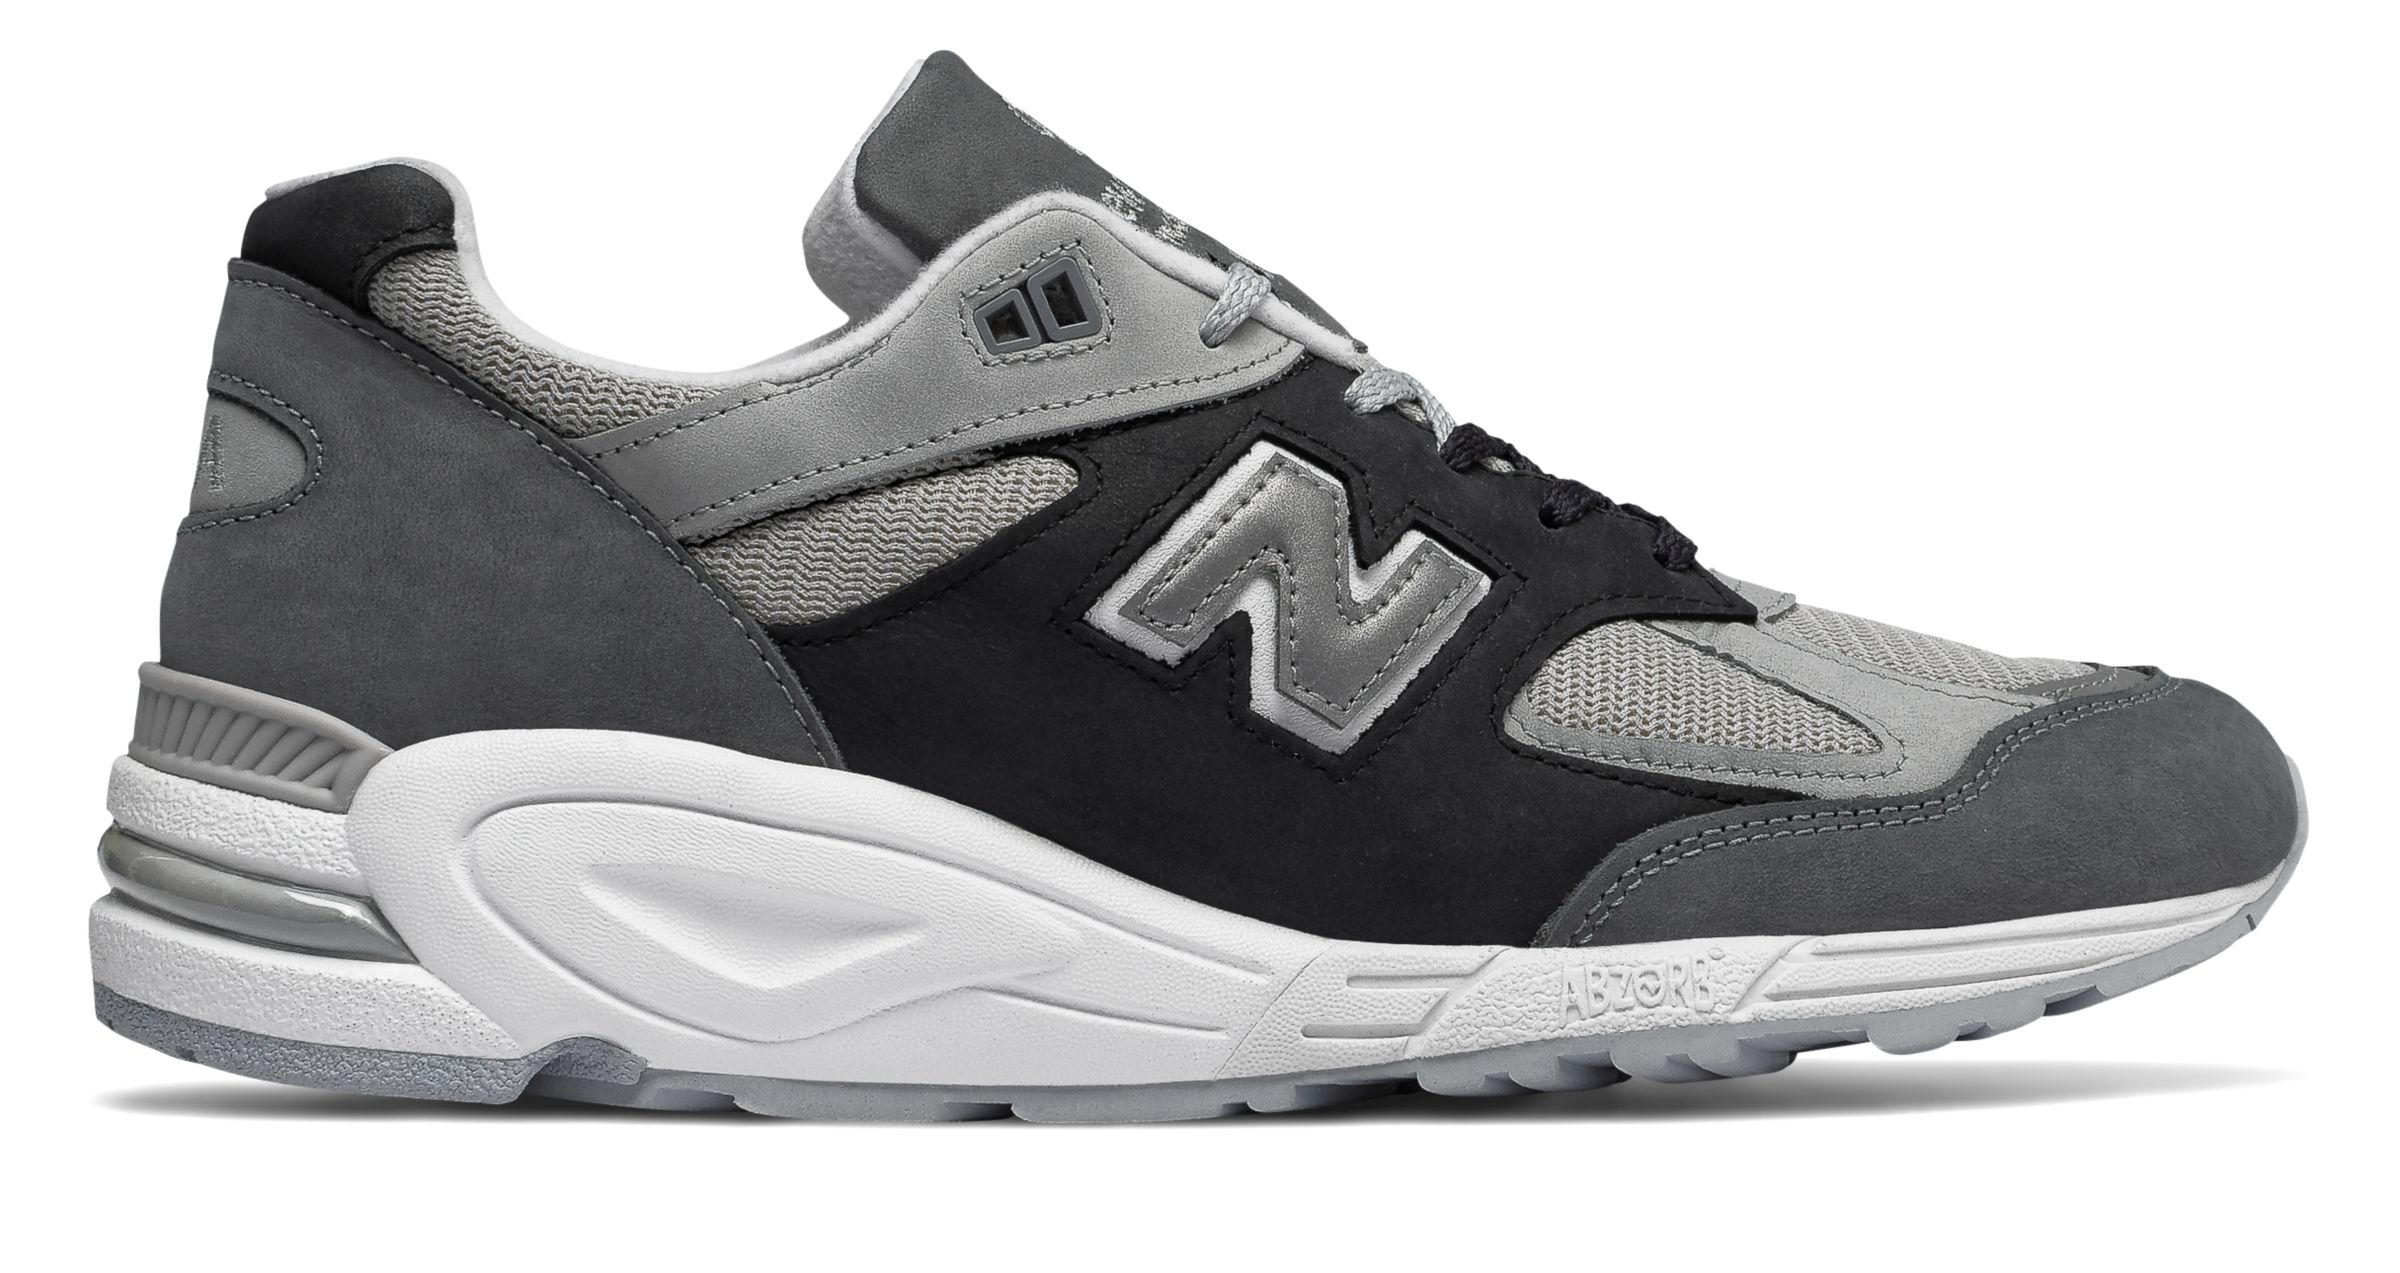 990v2 Made in US